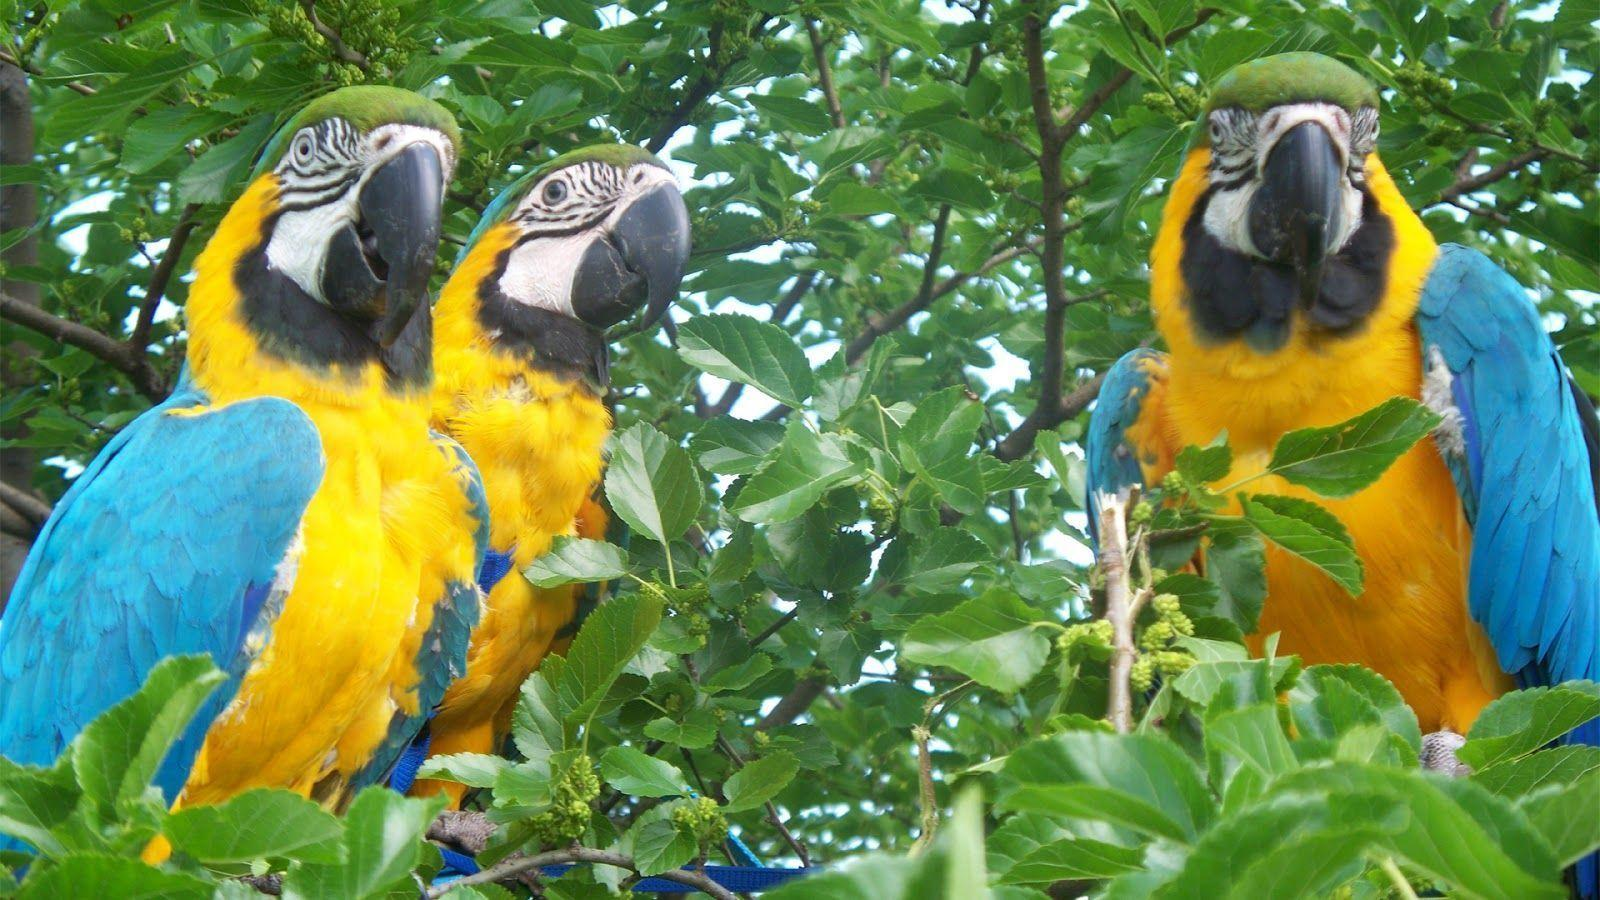 Macaw Parrot Wallpaper Download 1600×900 Wallpaper - Free Download ...